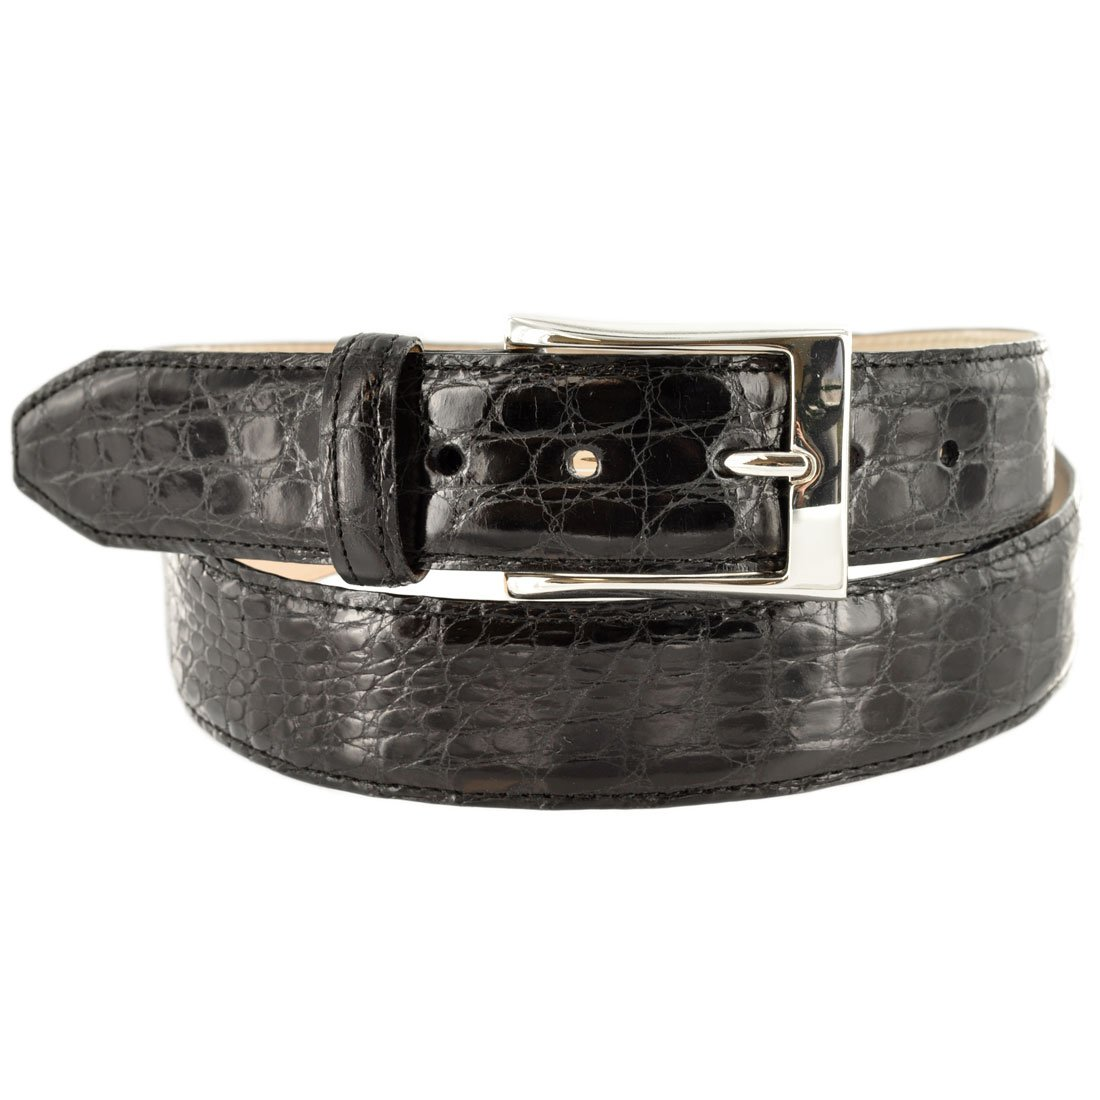 Dingman Dawson Crocodile Belt 40 Black